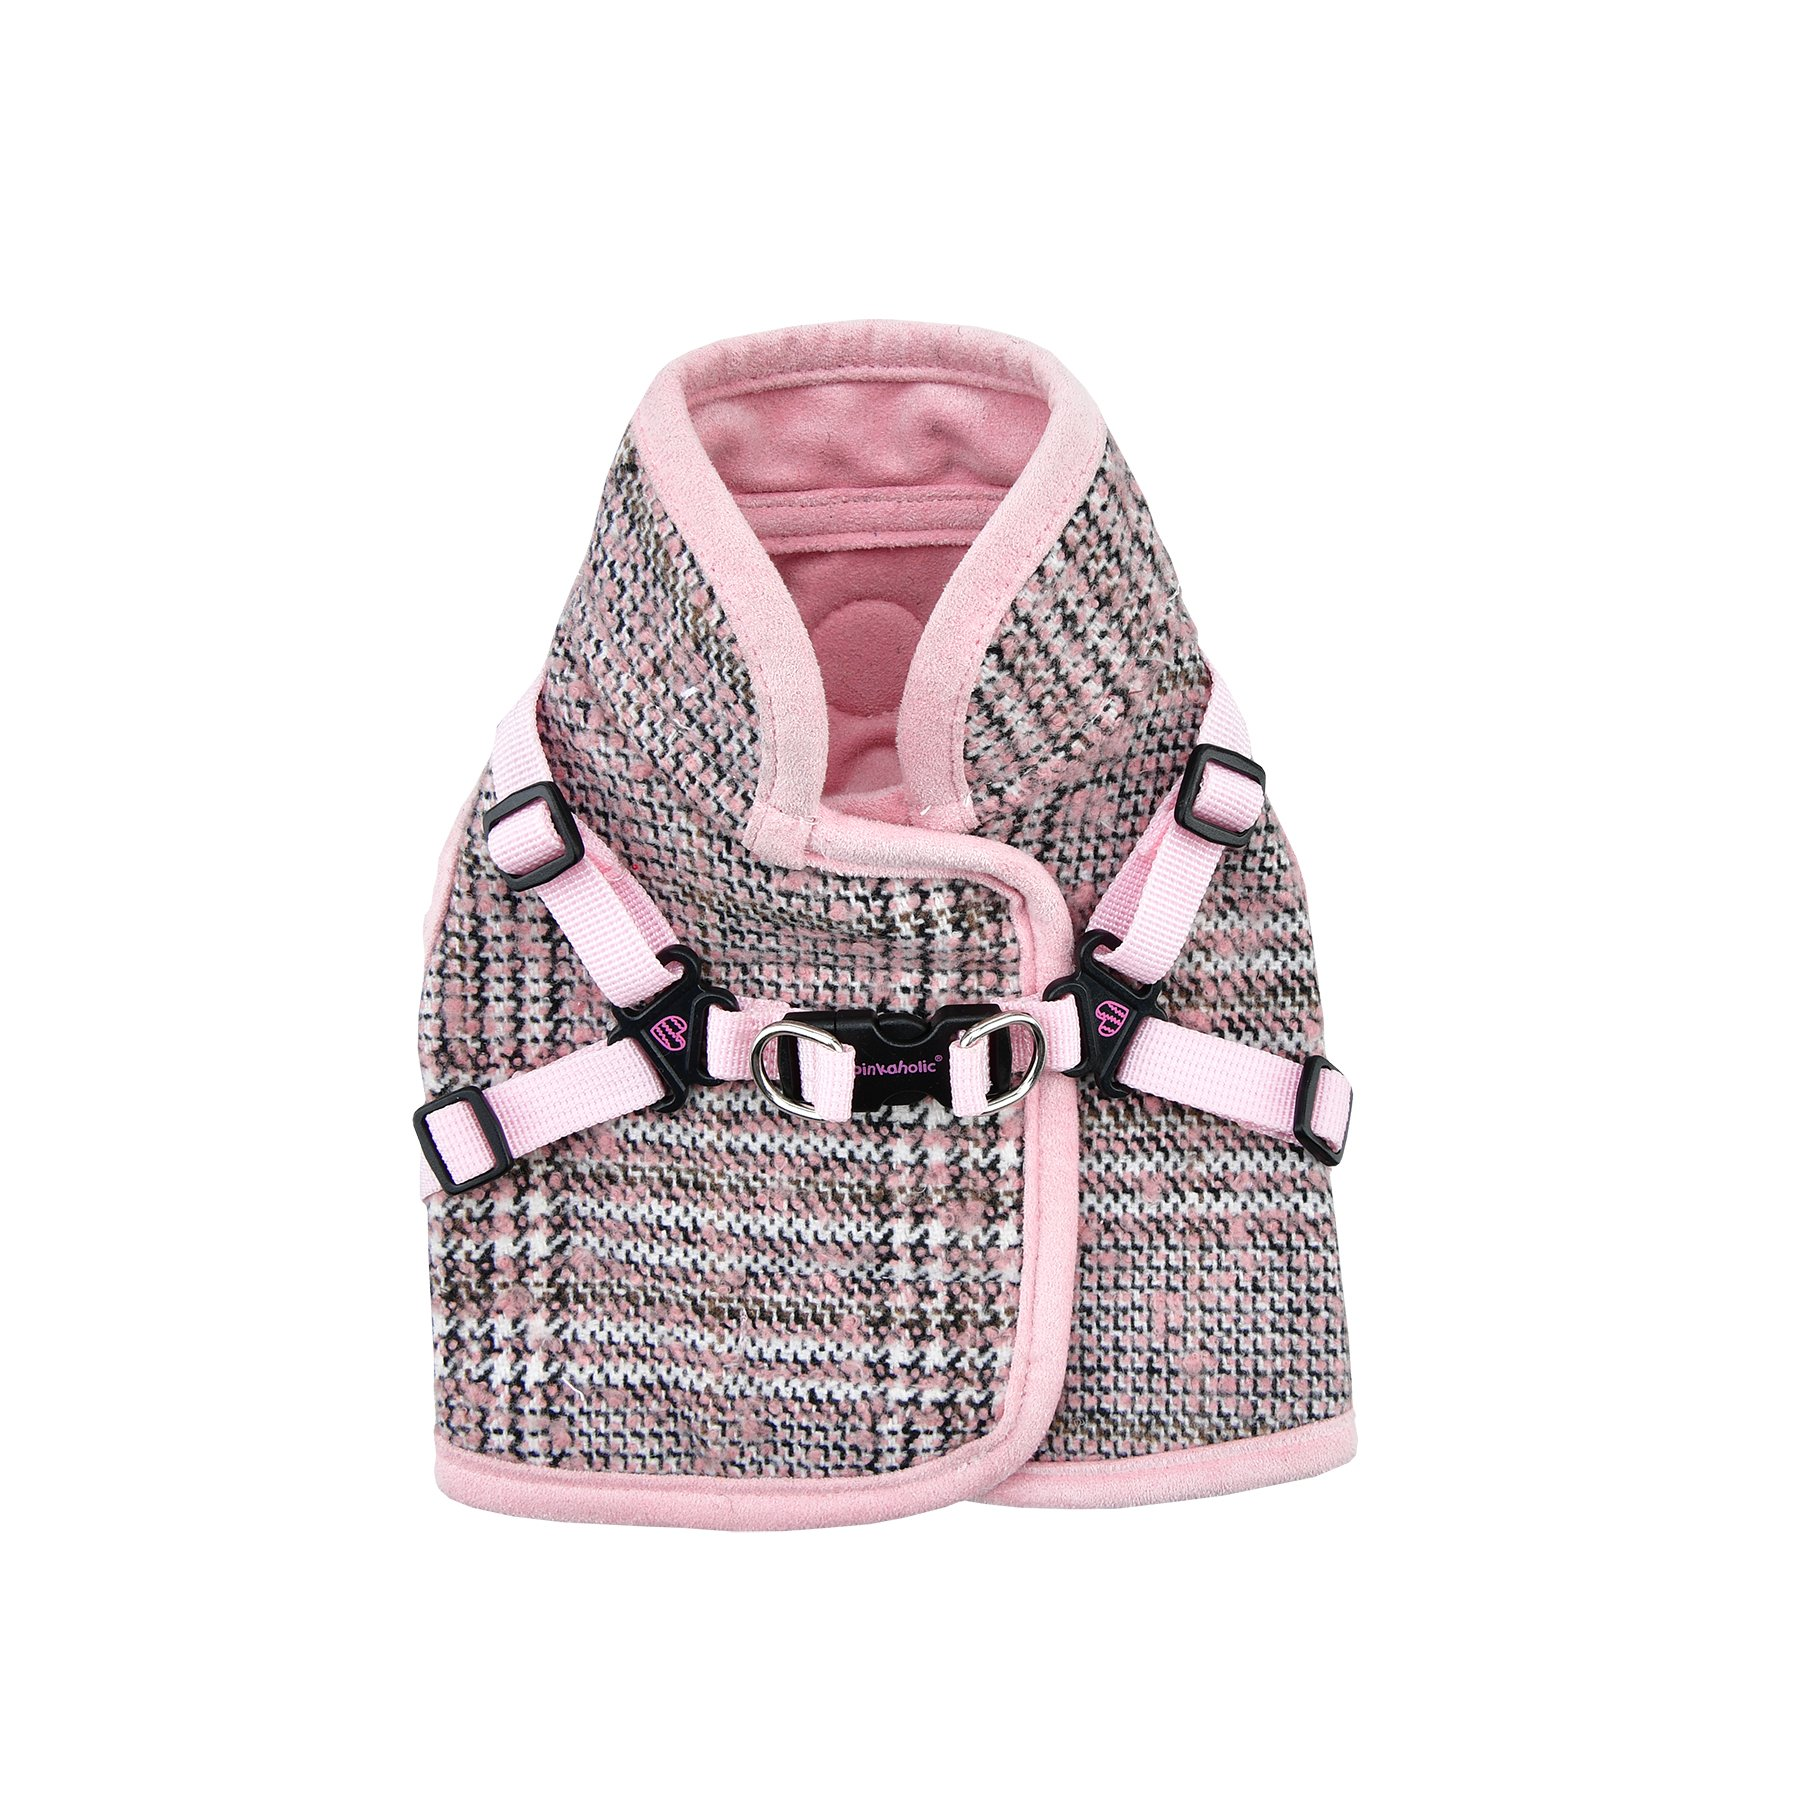 Pinkaholic New York DA Vinci Harness V - Indian Pink - L by Pinkaholic New York